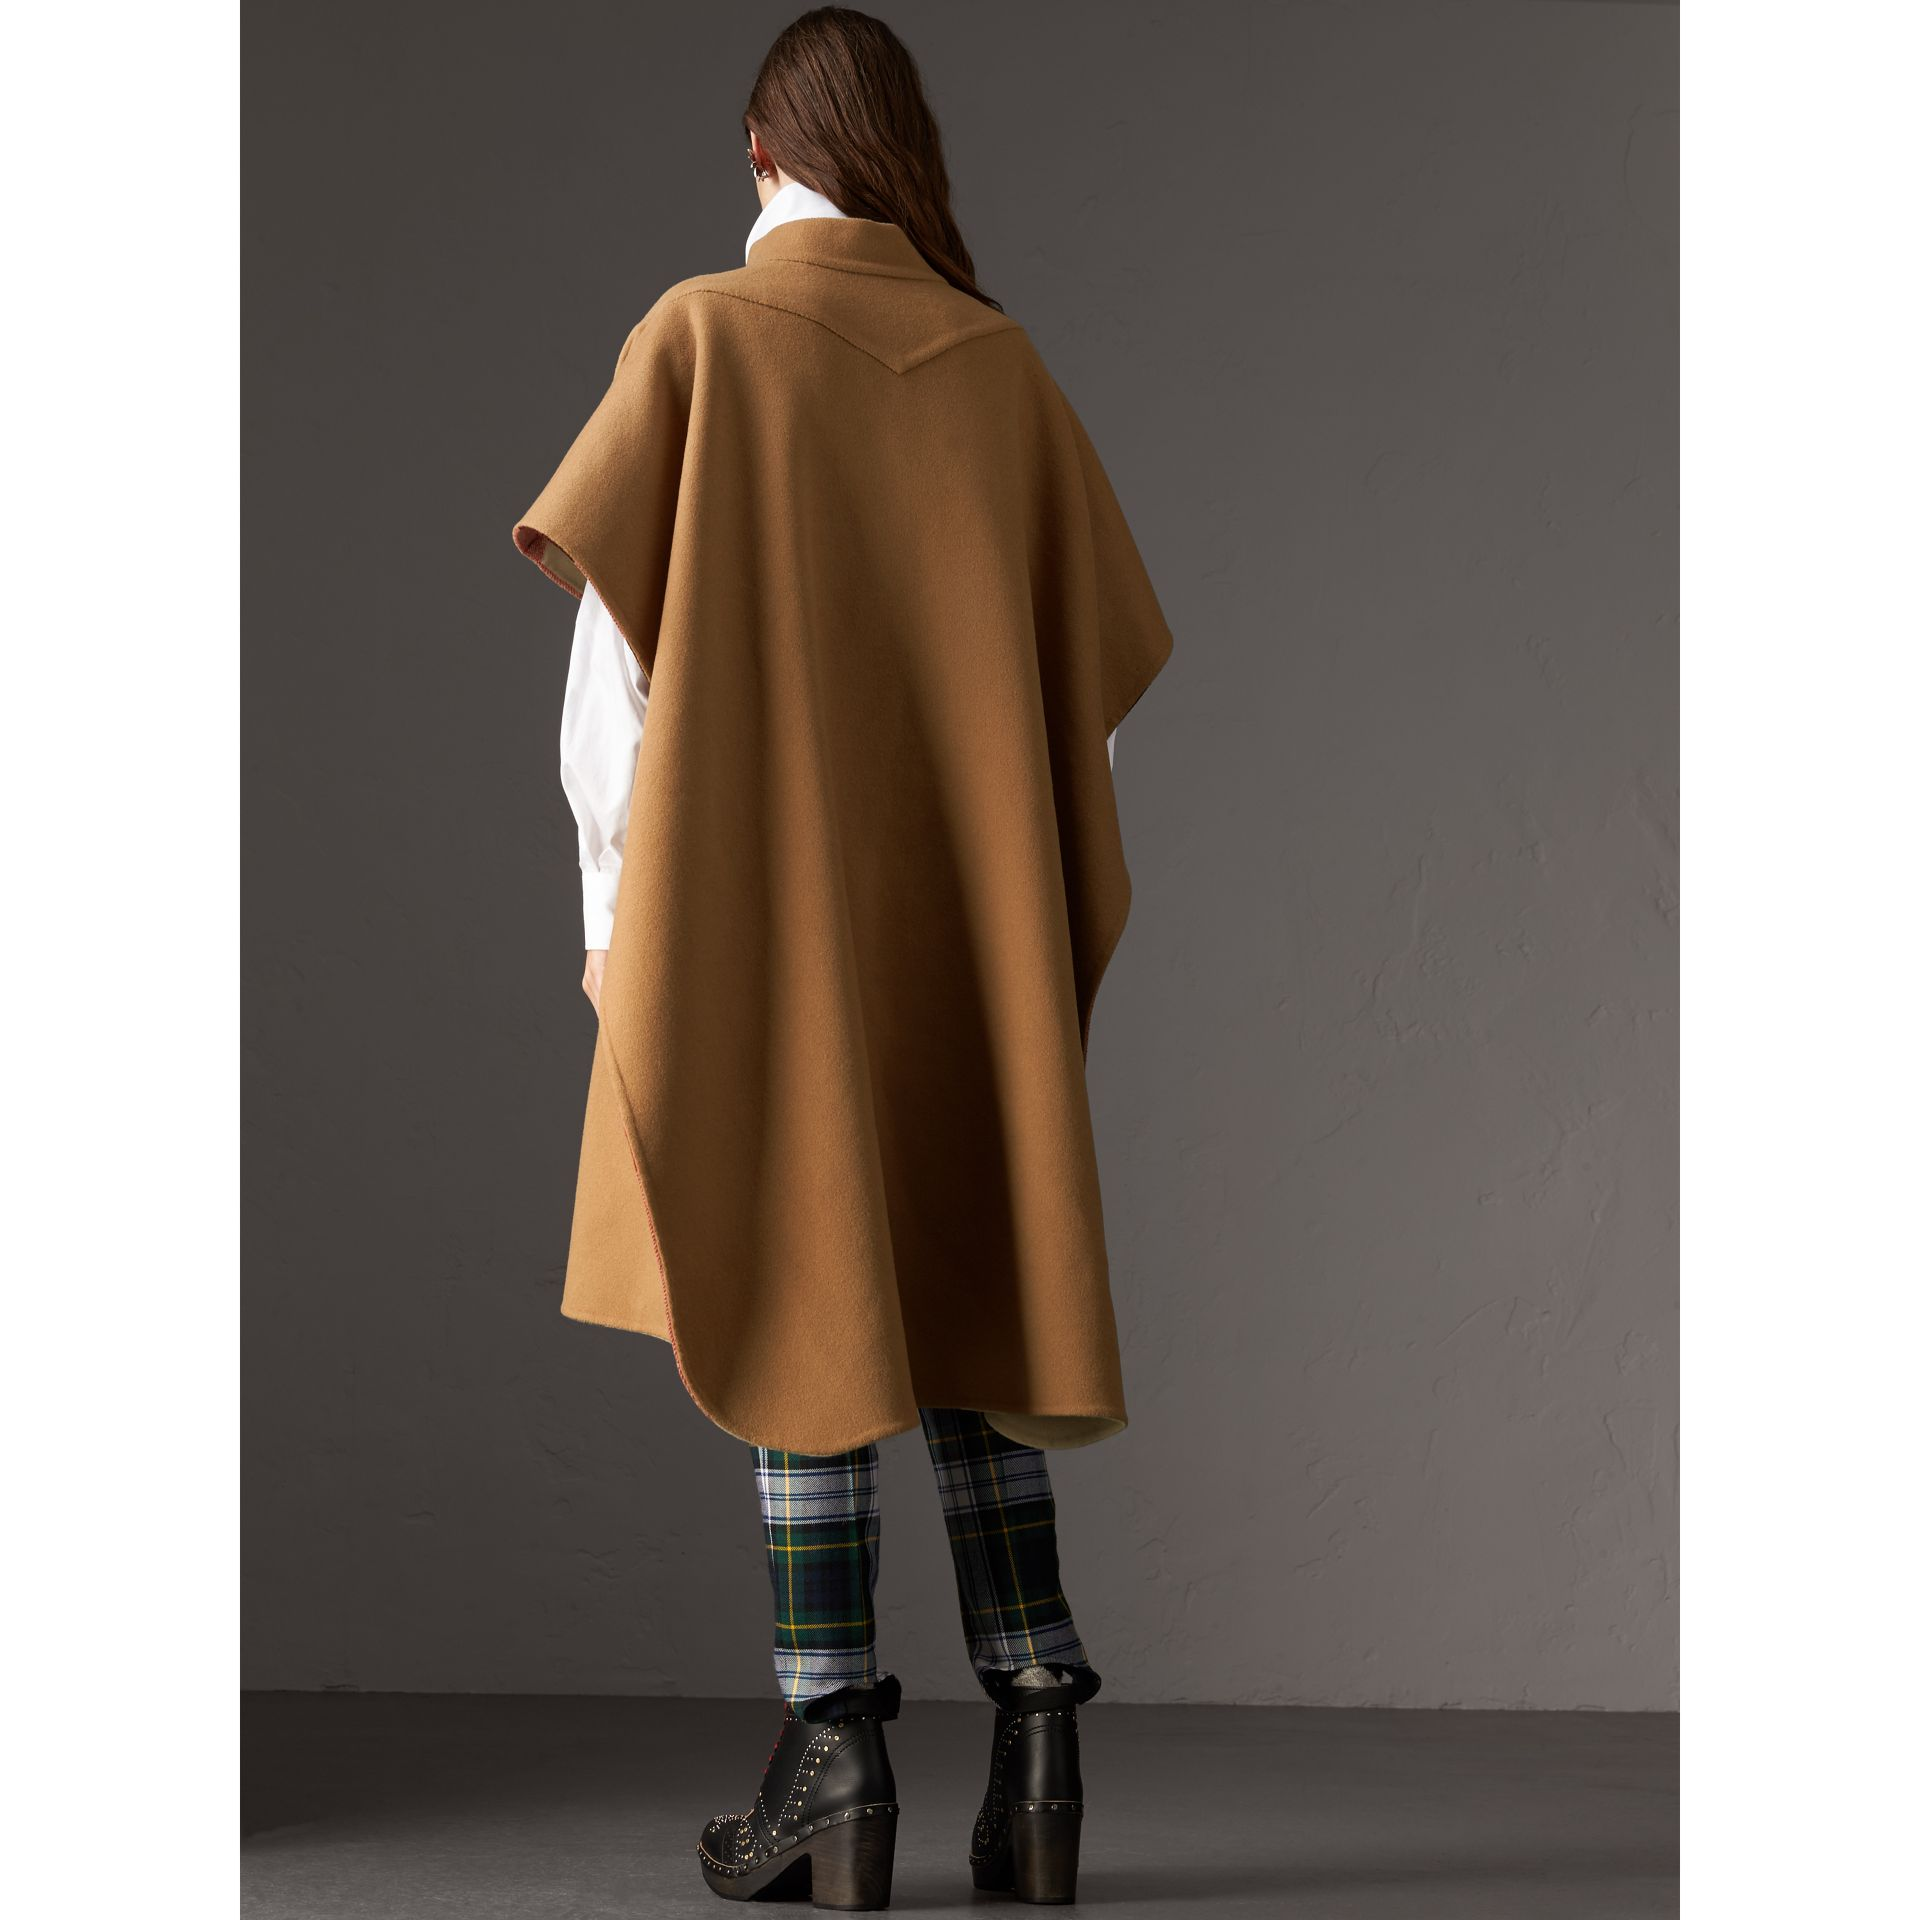 Reversible Check Oversized Poncho in Camel - Women | Burberry - gallery image 3